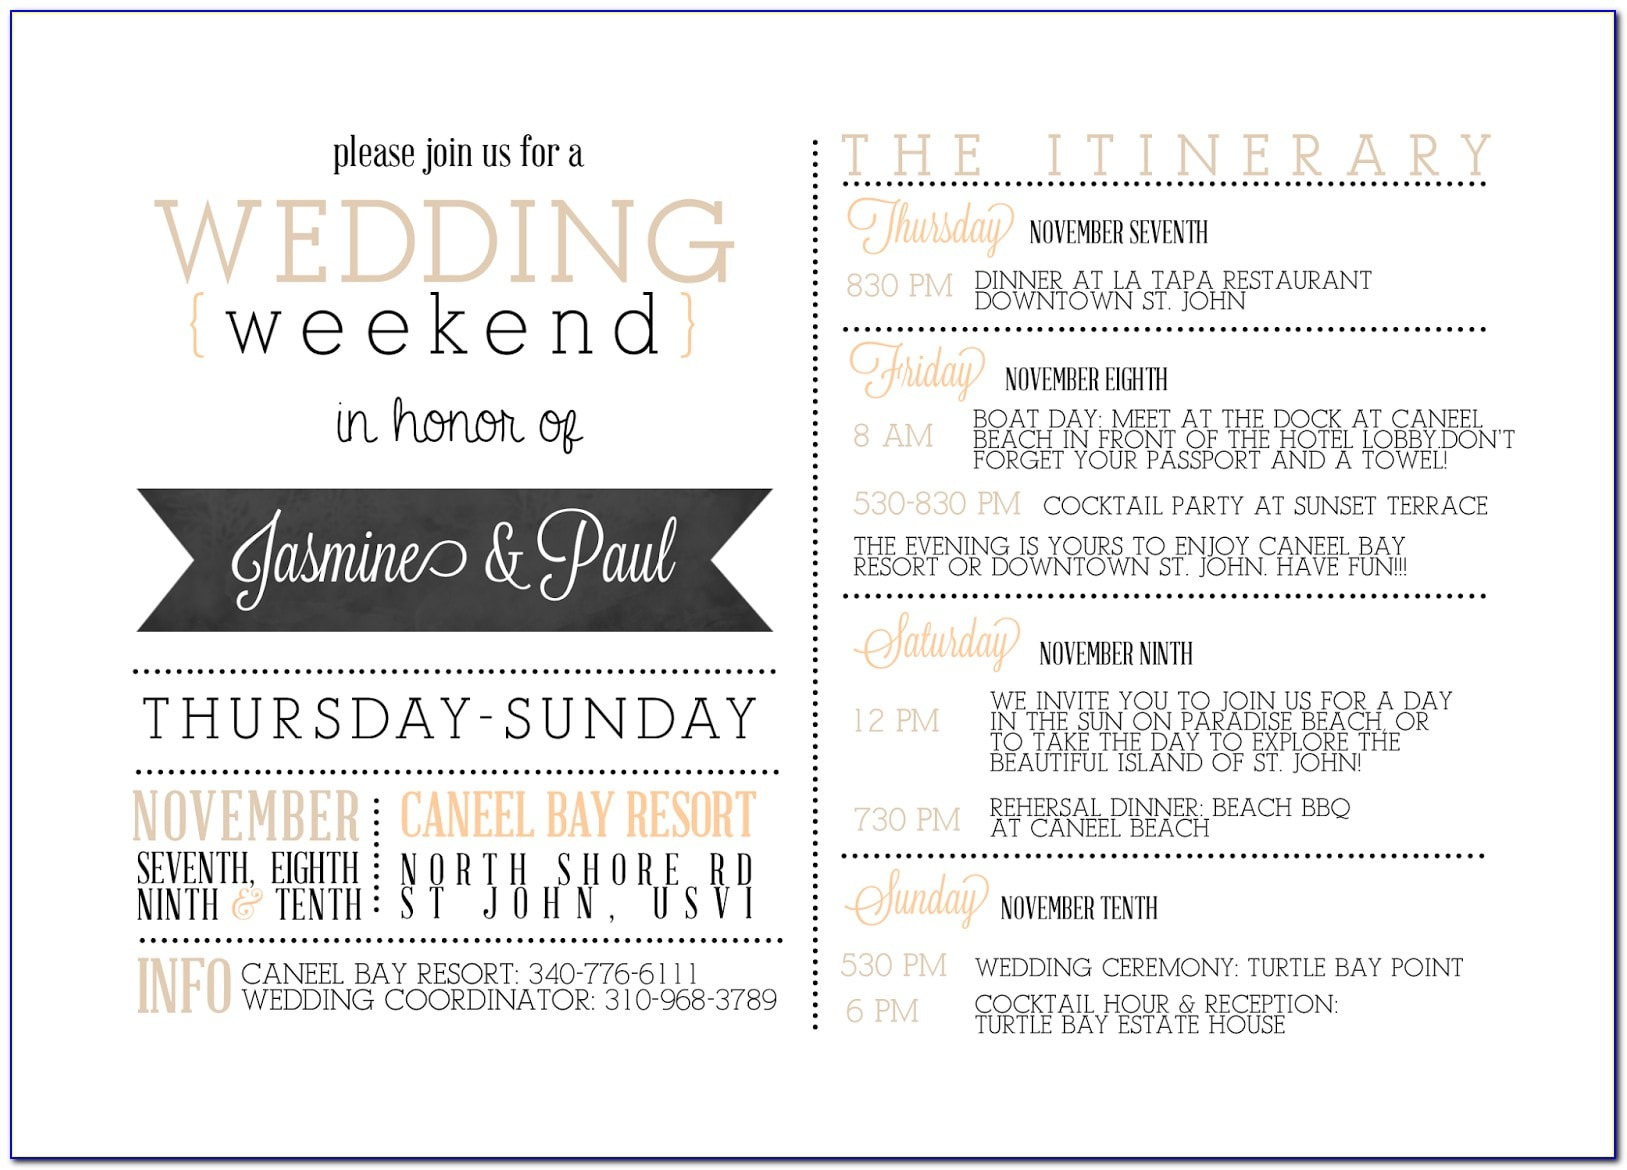 Wedding itinerary template for guests